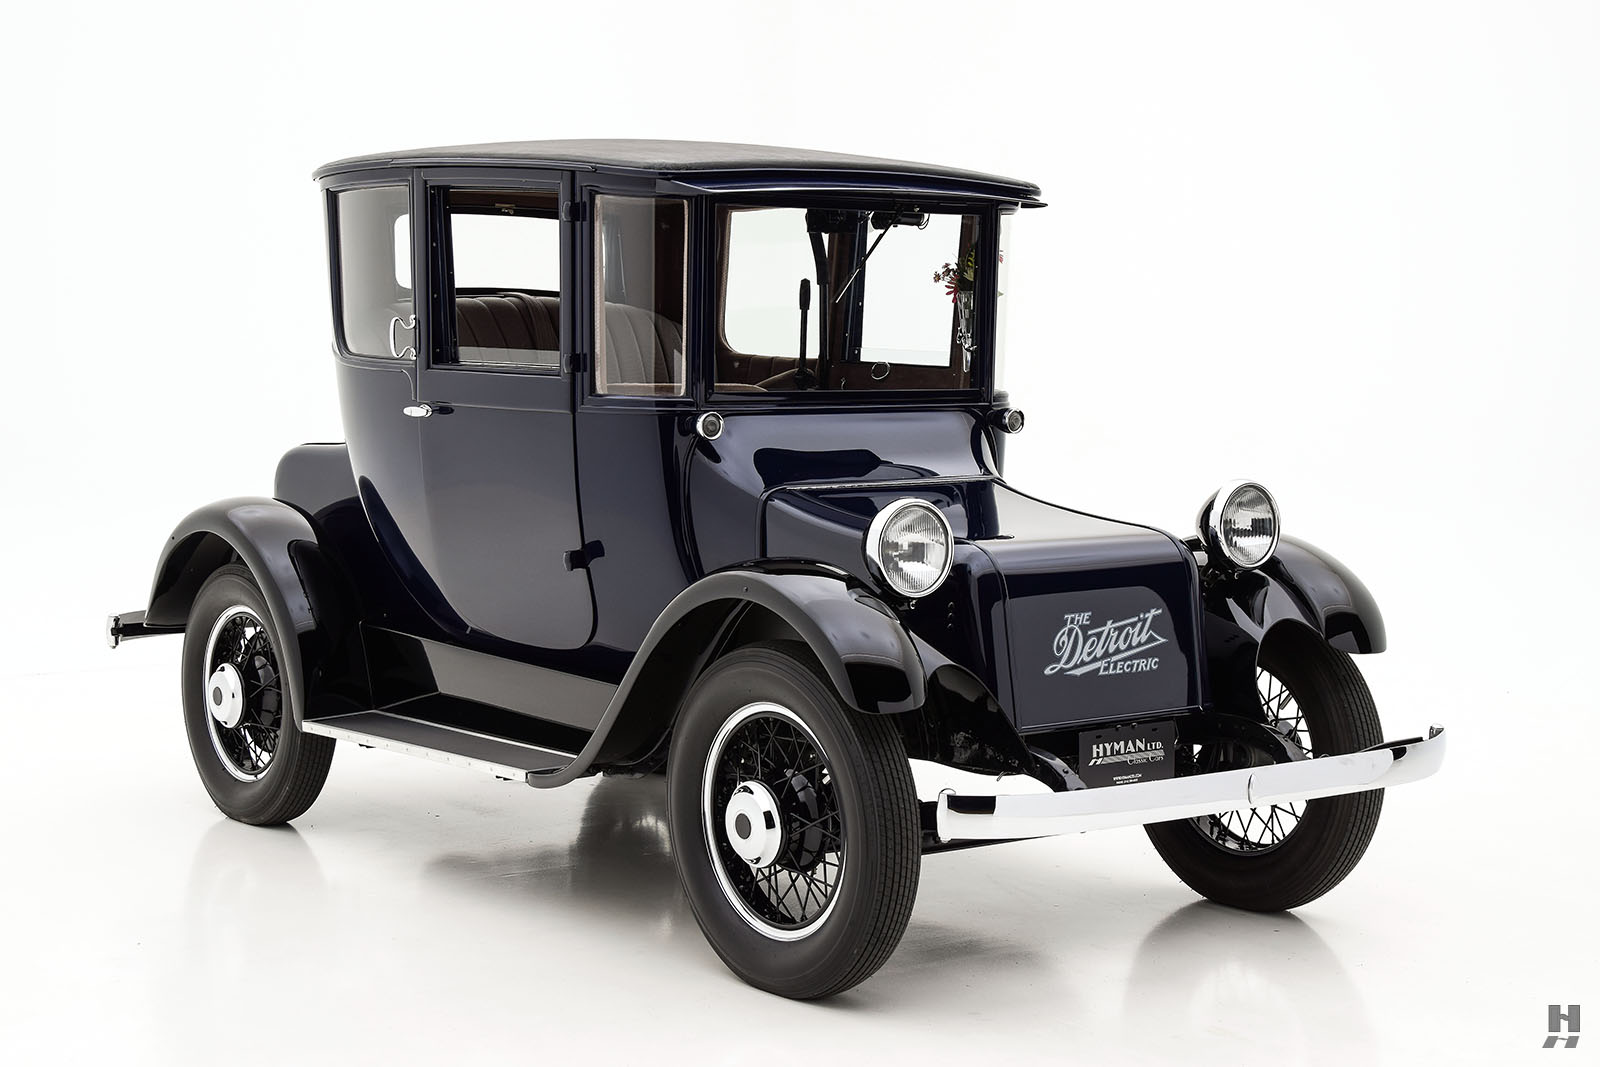 1931 Detroit Electric Model 97 Coupe Clic Car For